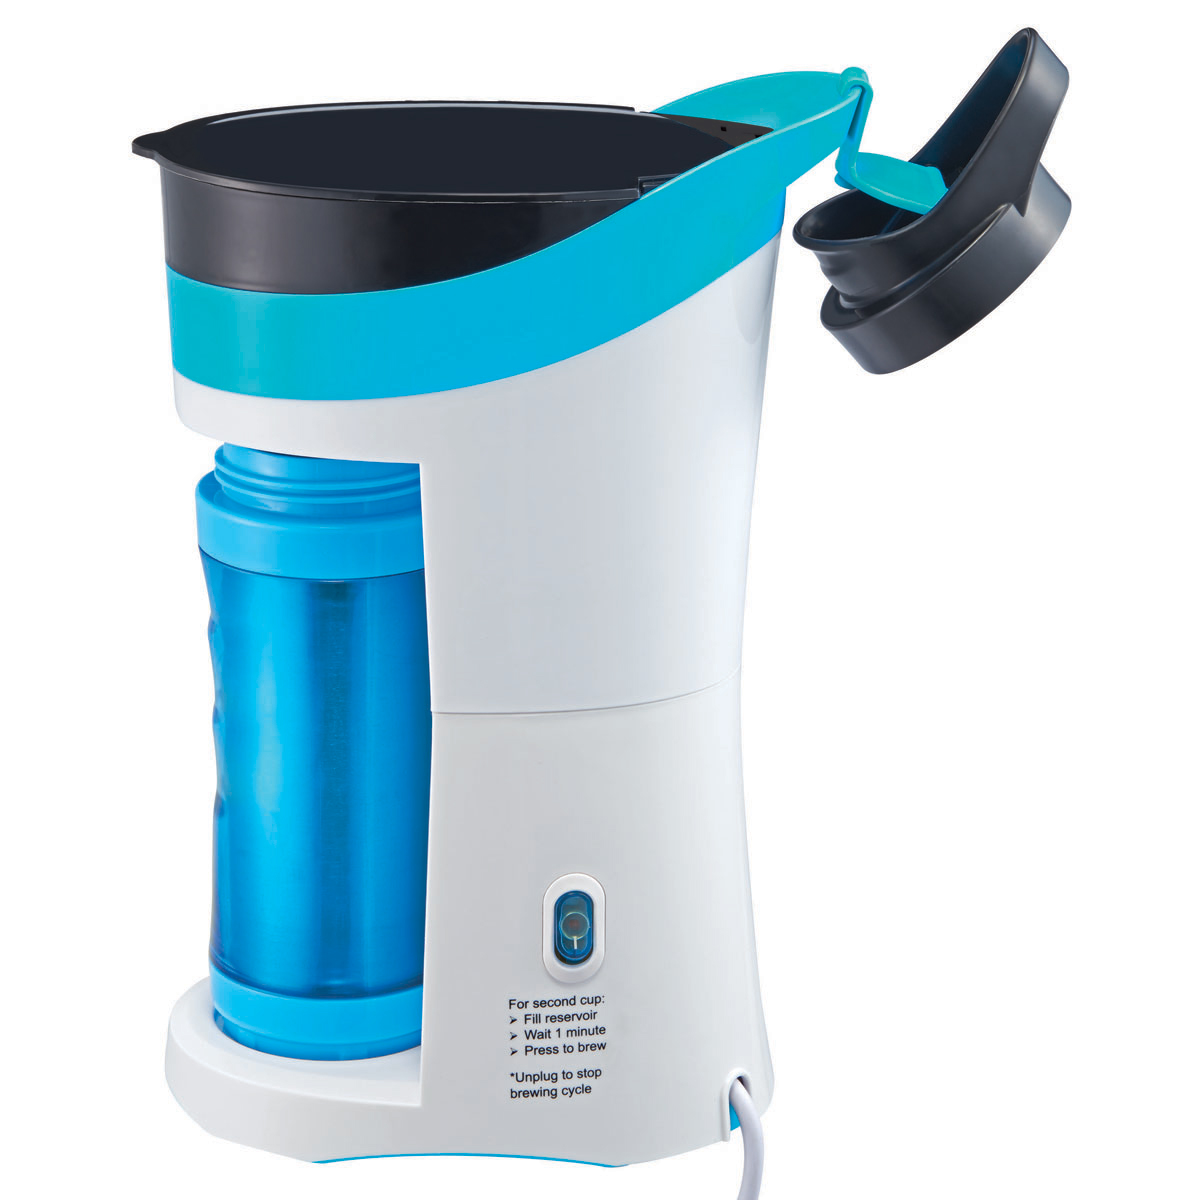 Oster Coffee Maker Delay Brew : Oster Pour! Brew! Go! Single Cup Coffee Maker, Blue BVSTMYBB-31LD Oster Canada